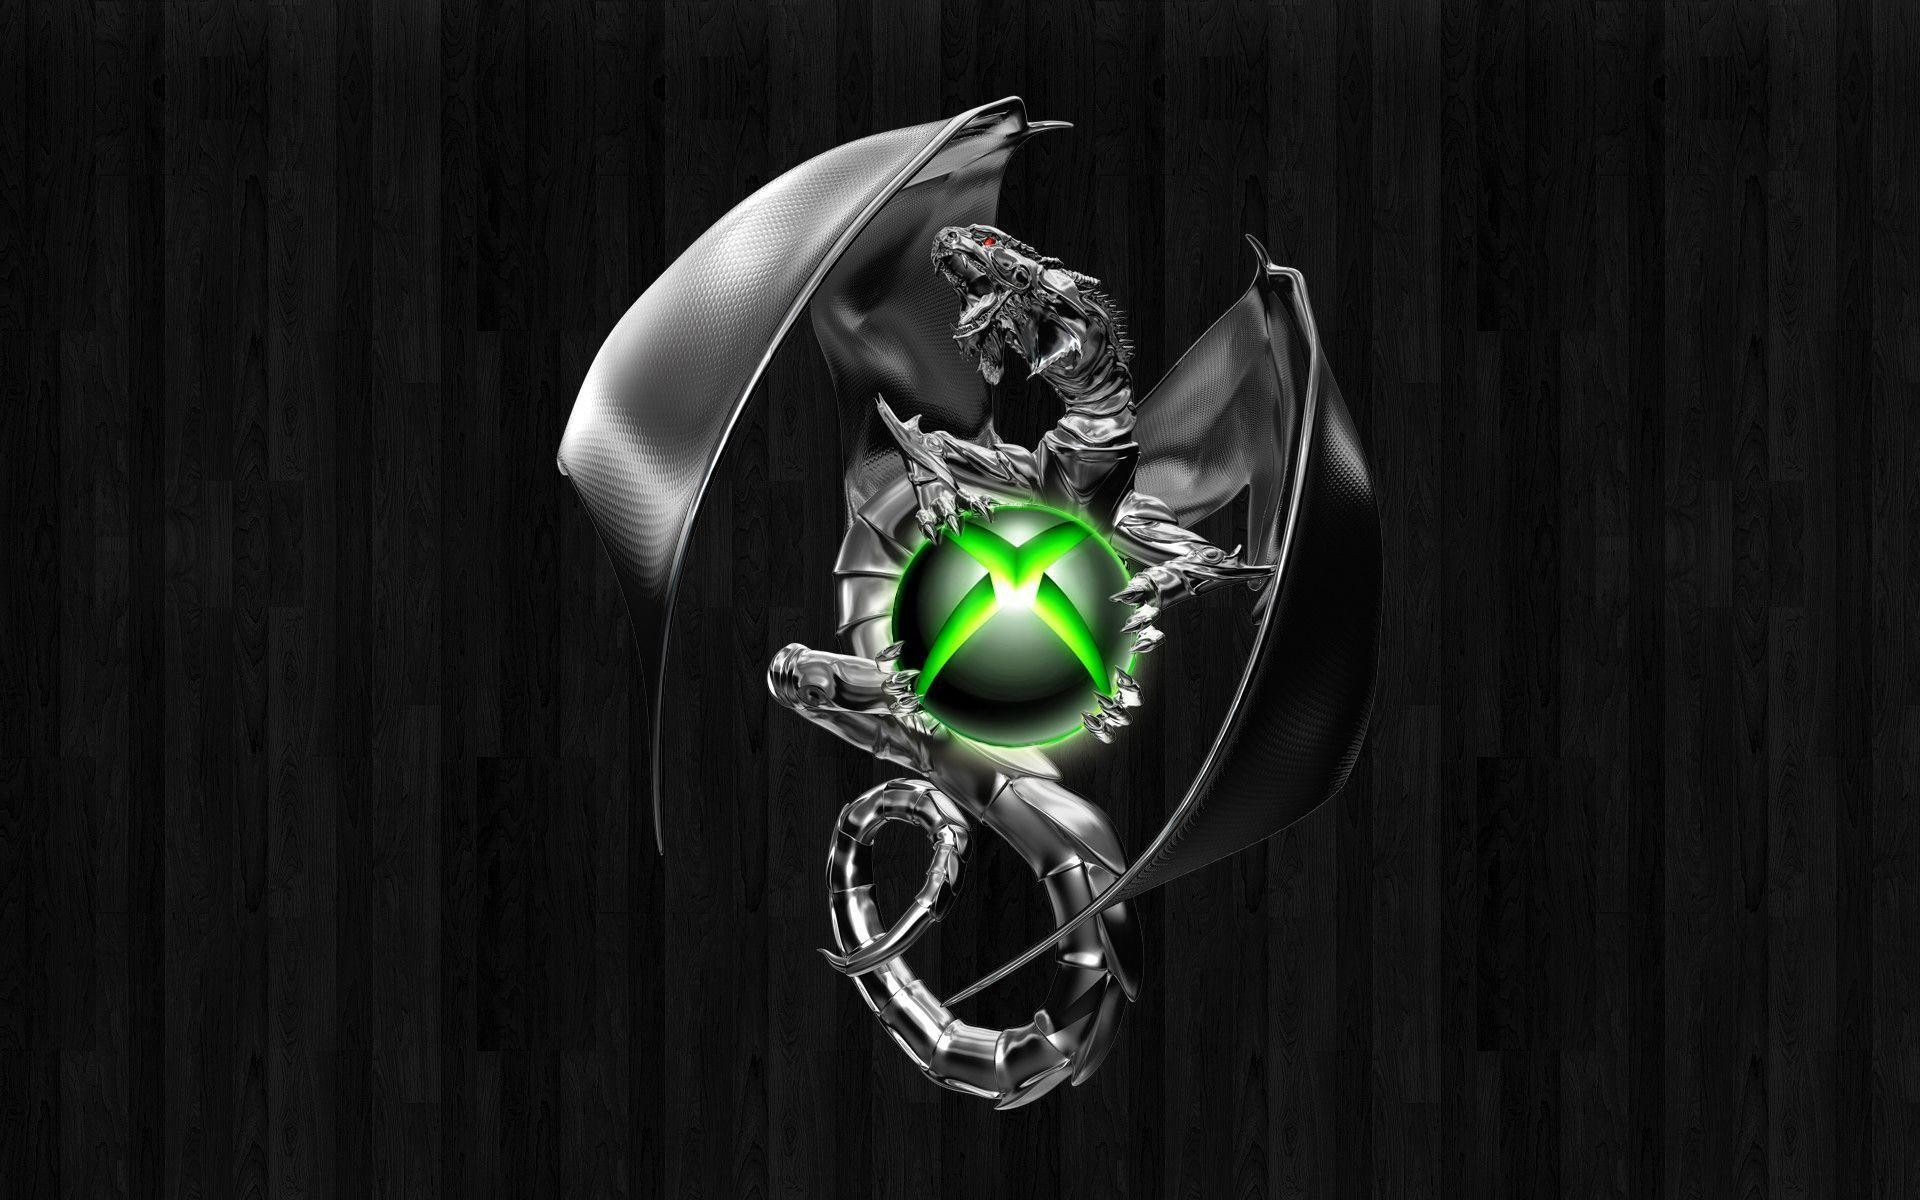 Cool Xbox Backgrounds 69 images 1920x1200